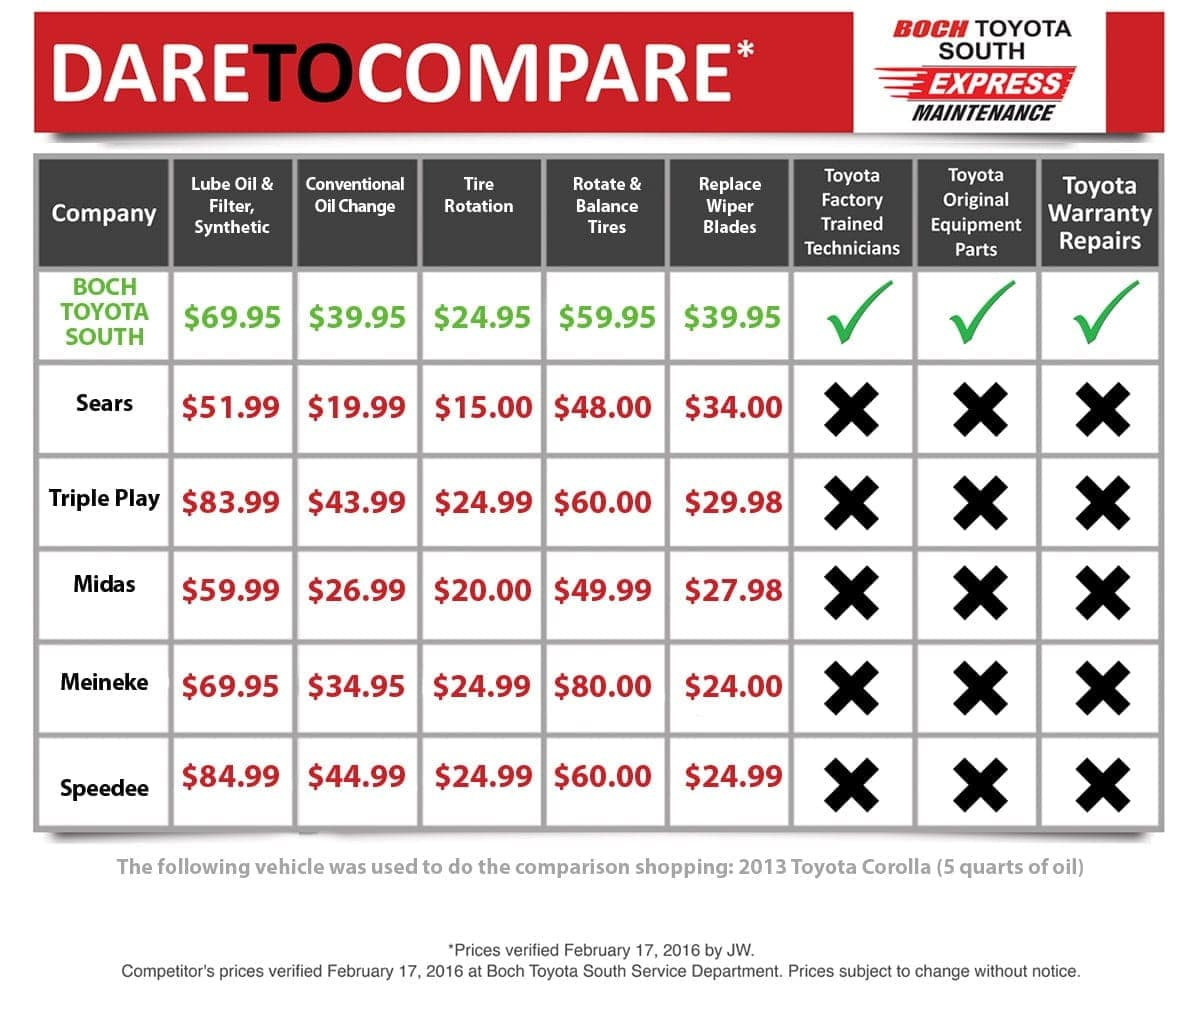 Boch_Toyota_South_Dare2Compare_Chart_122717